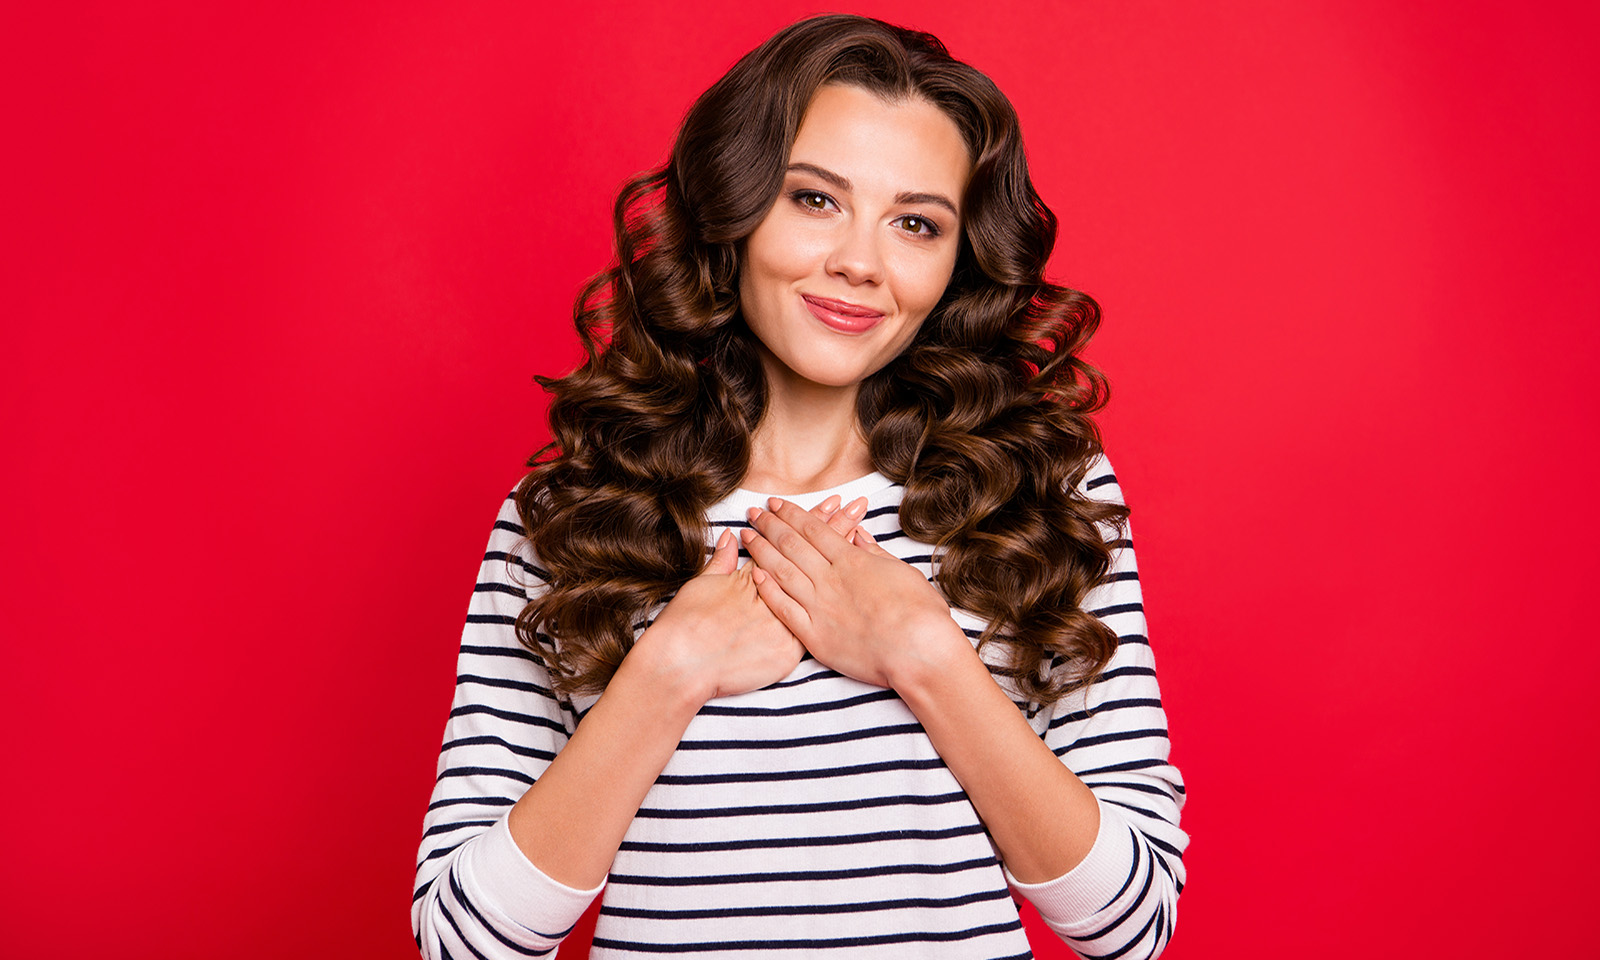 4-signs-youre-a-highly-sensitive-person-woman-holding-her-chest-showing-gratitude-and-emotion